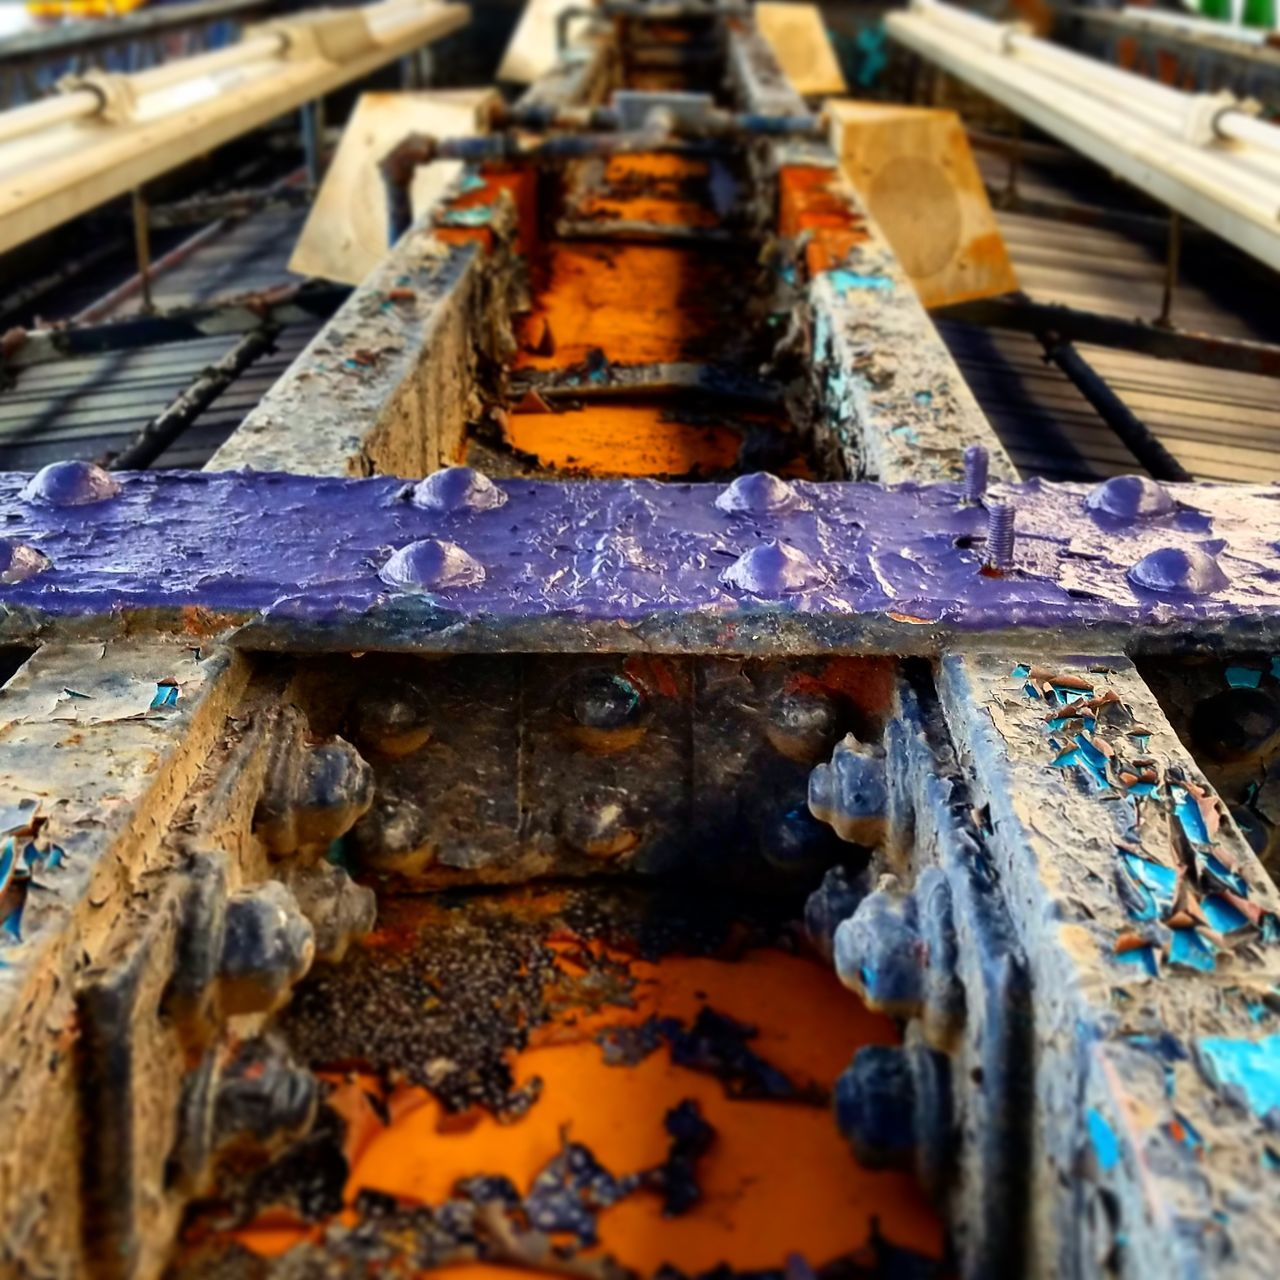 -Underbelly of the Beast- Subway Metal Beams Painted Beams Supports Transportation Urbanphotography Decay Peeling Paint Color Of Life